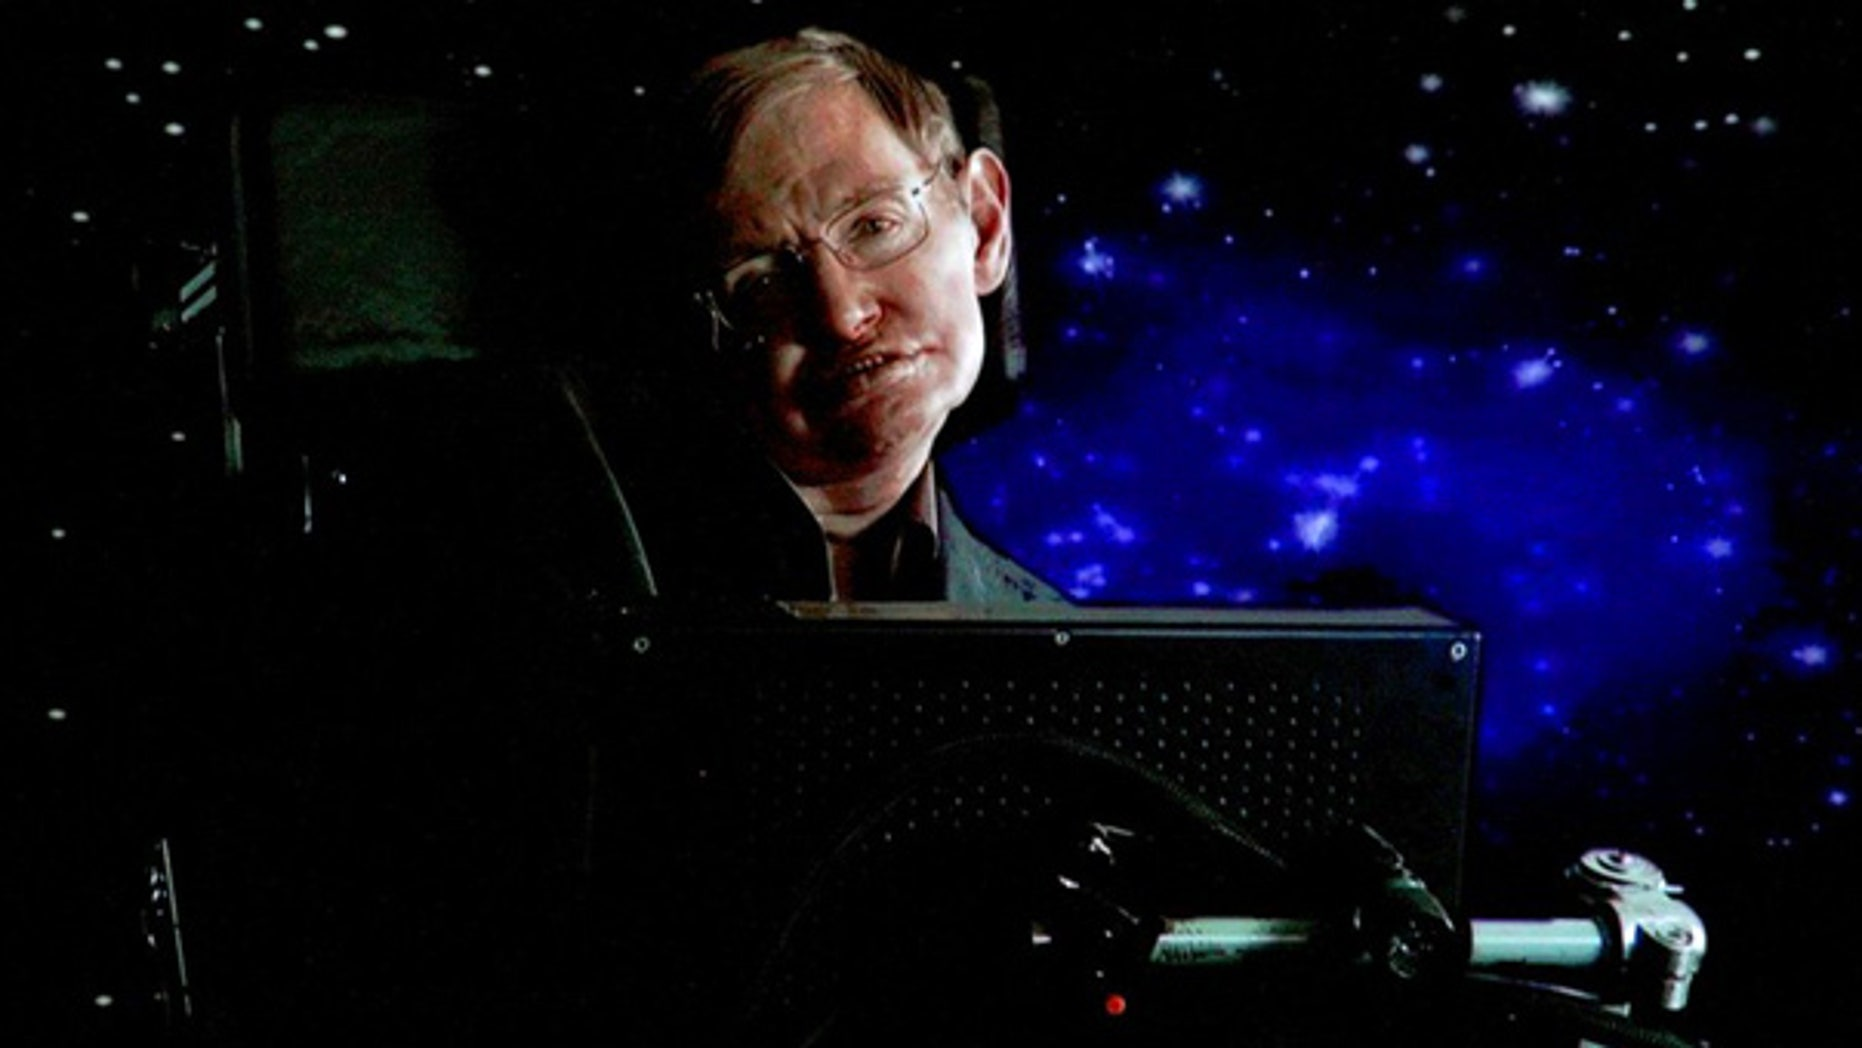 Stephen Hawking speaks via satellite during a Science Channel presentation in Pasadena, Calif.